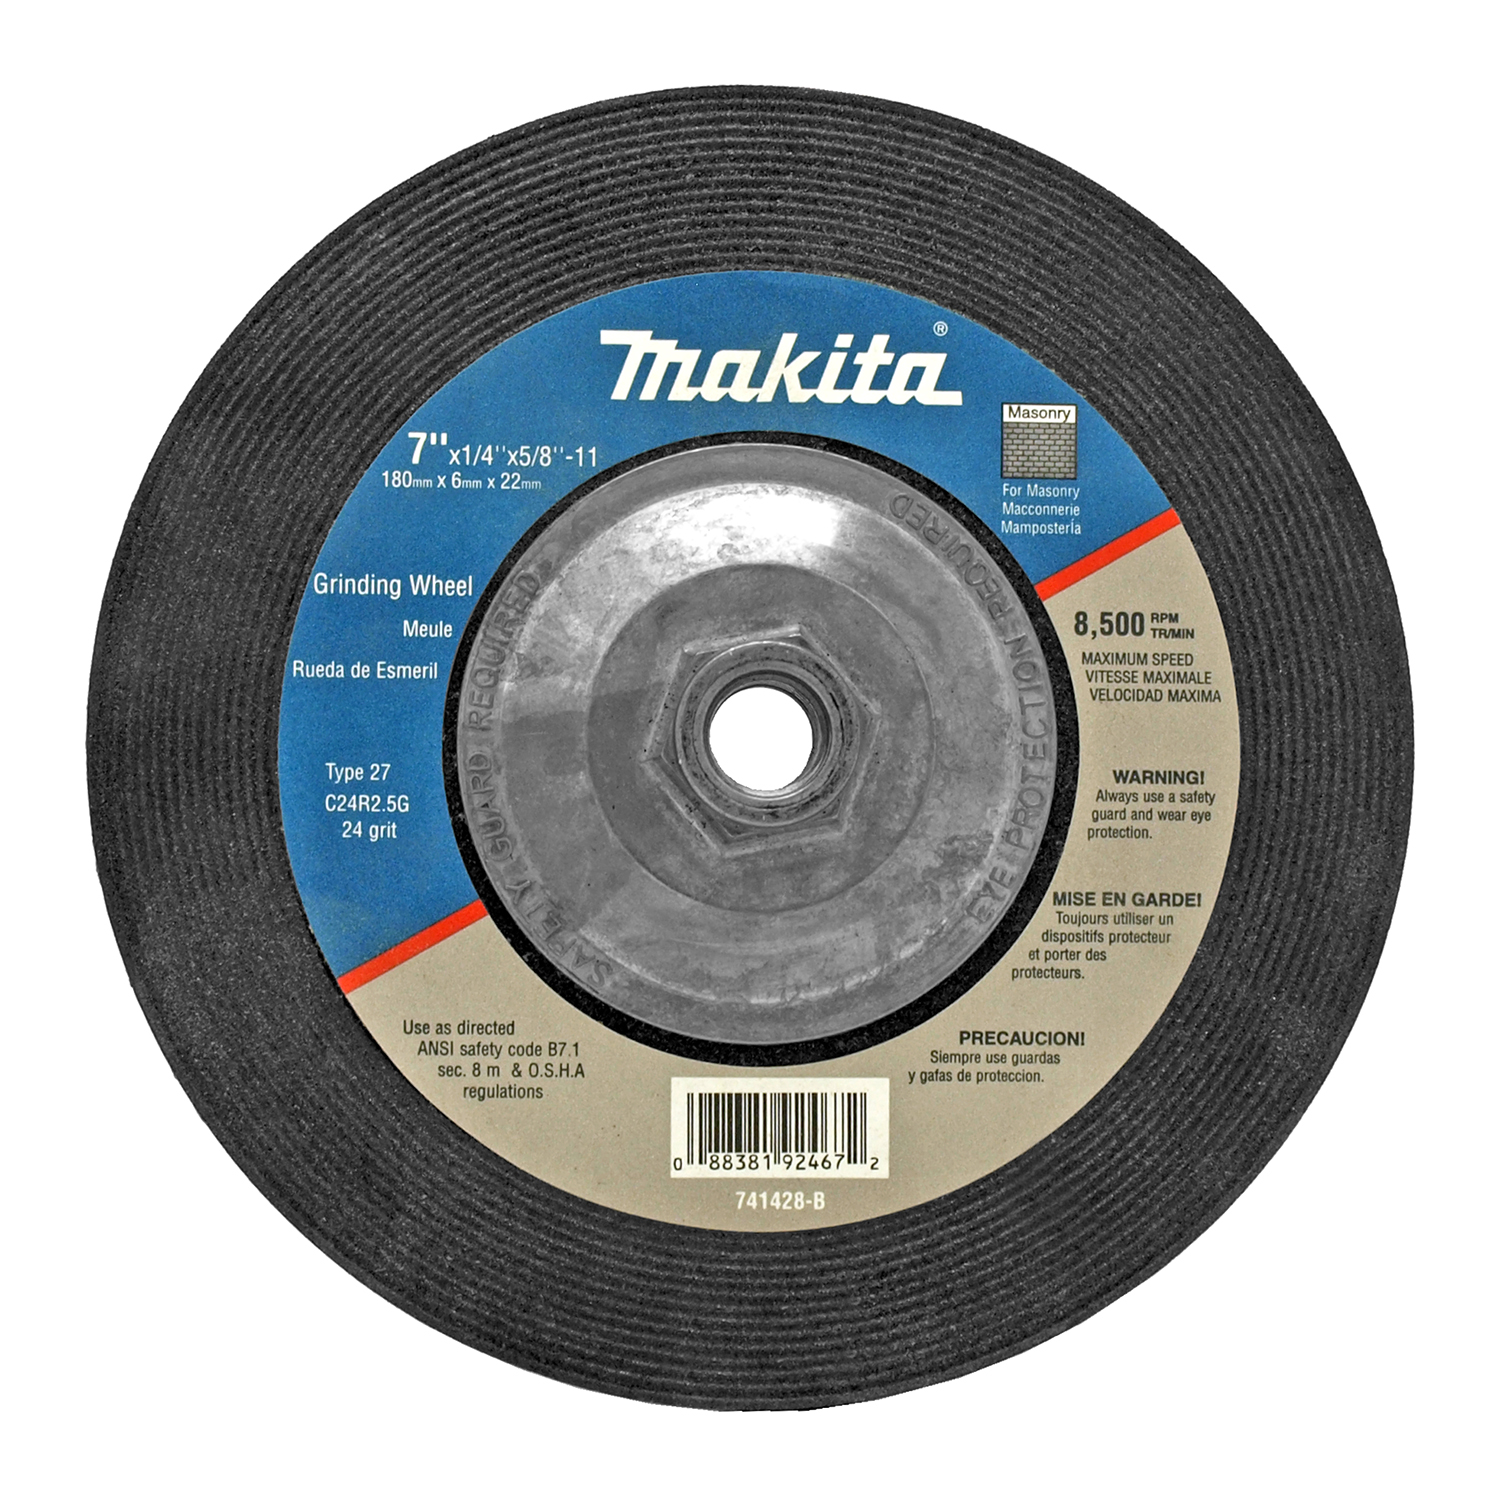 7 in 24 Grit Grinding Wheel - Makita